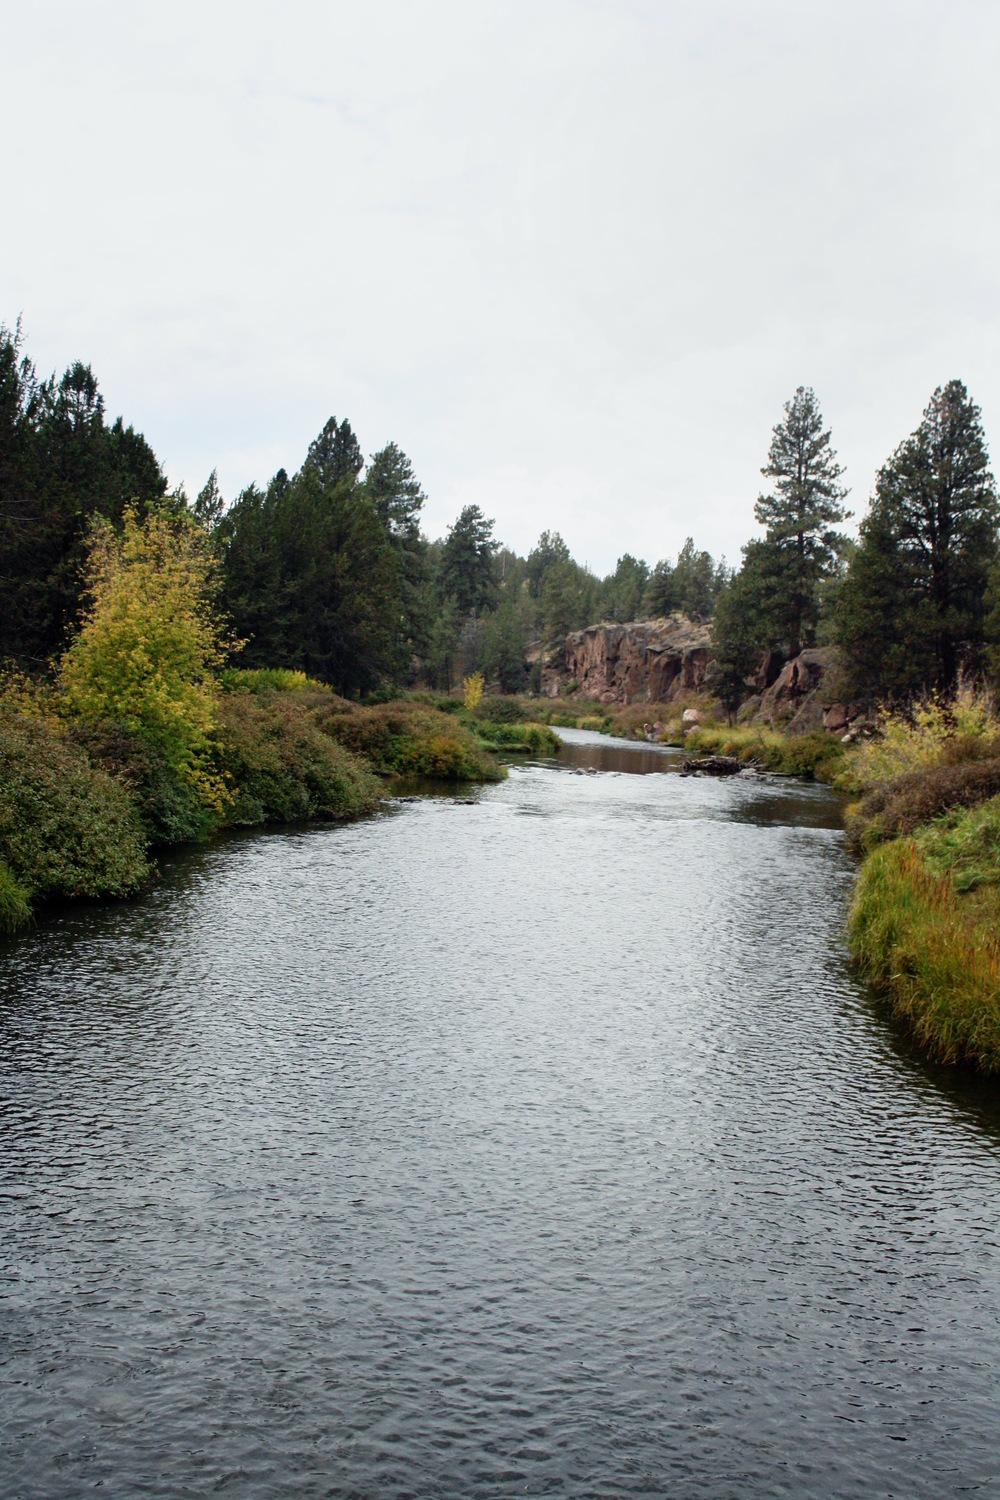 Deschutes-River_heatherbyhand.jpg